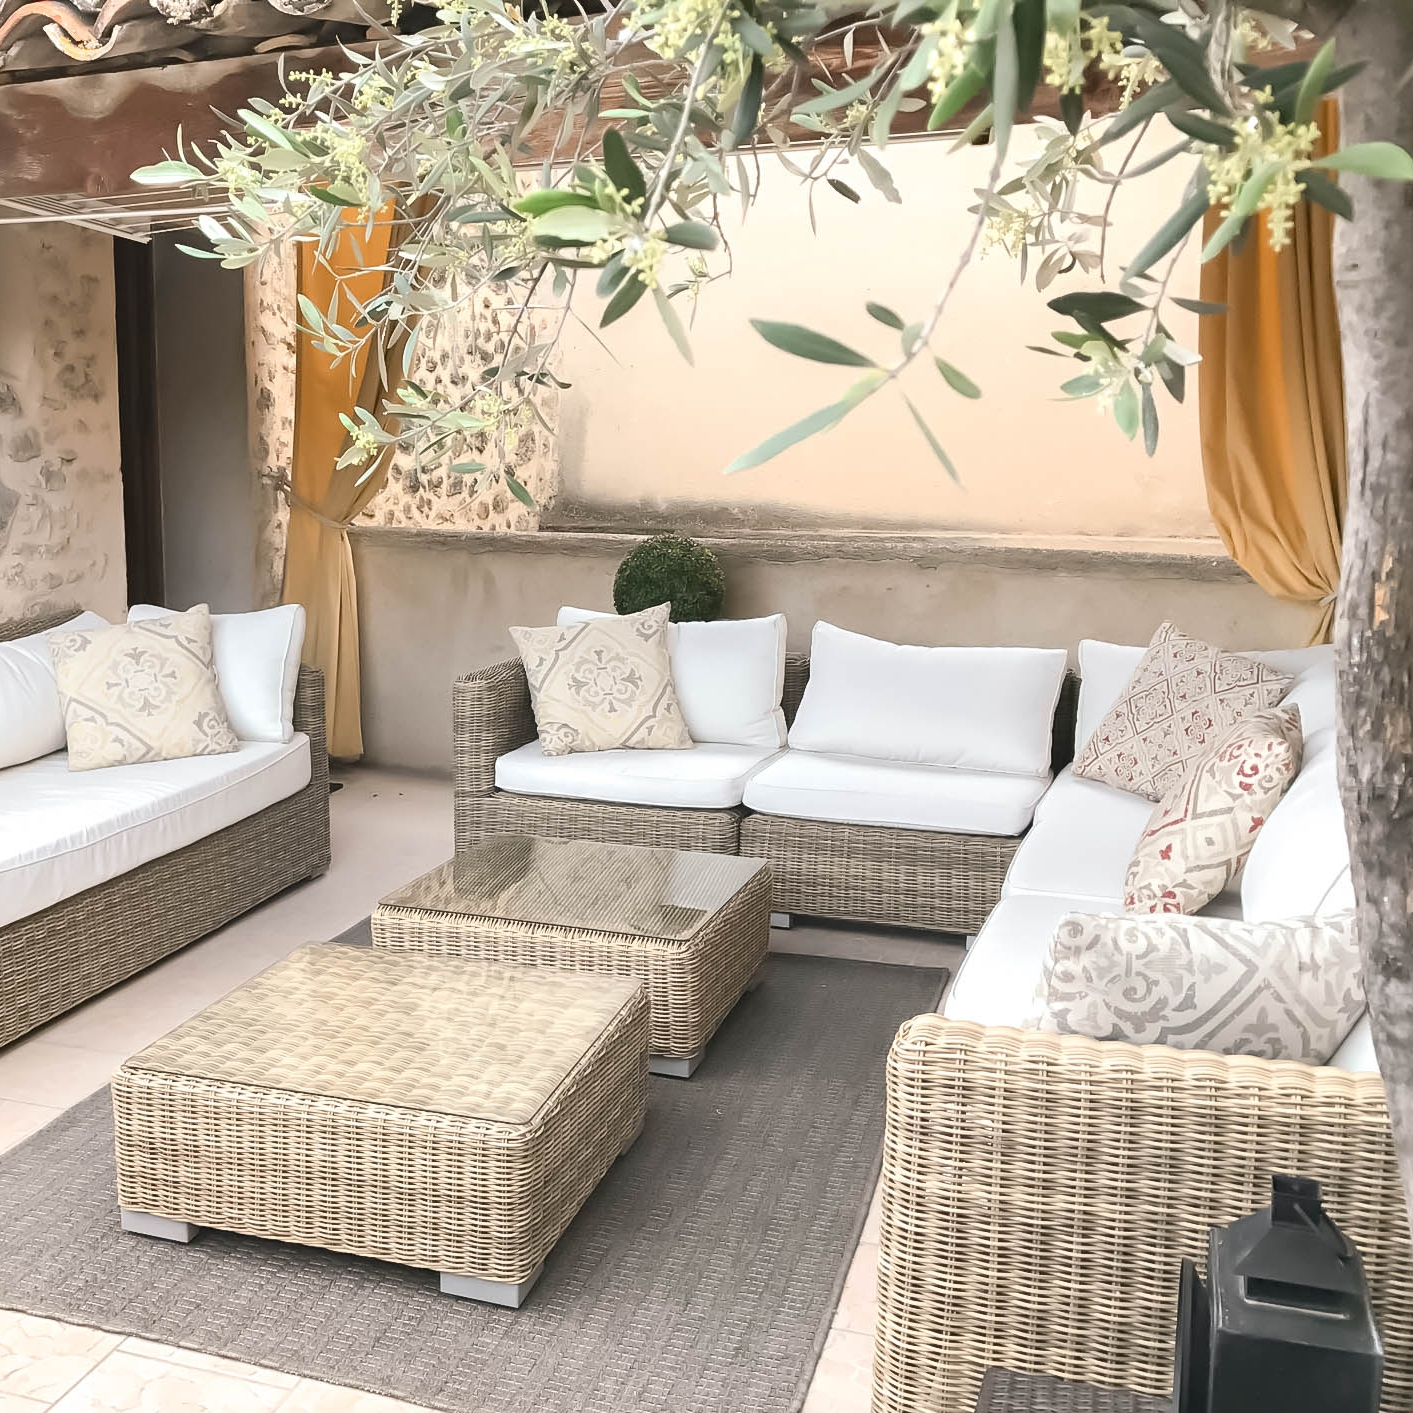 Outdoor patio area in rental property in Provence, France